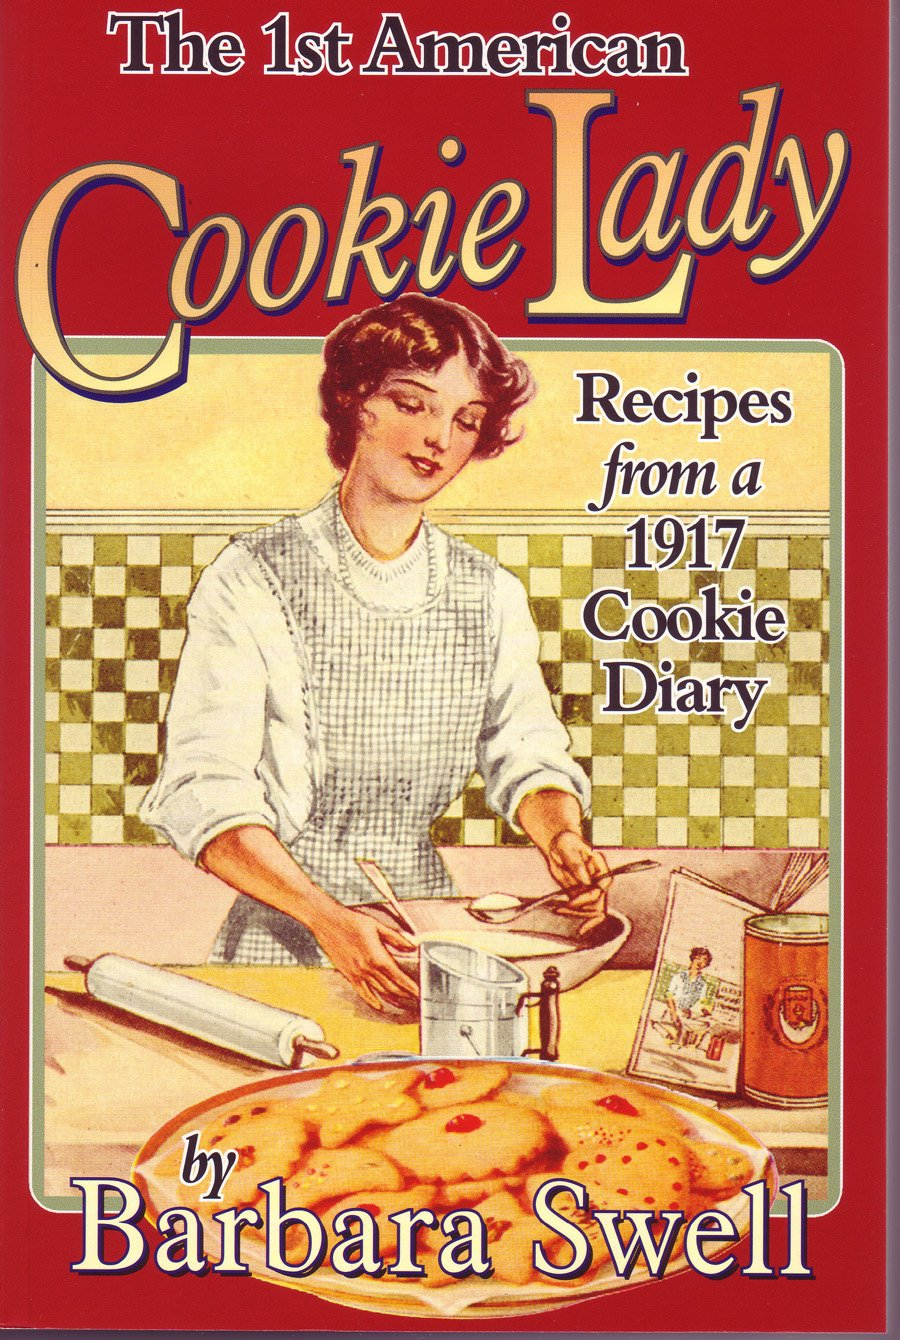 The First American Cookie Lady by Brand: Native Ground Books n Music